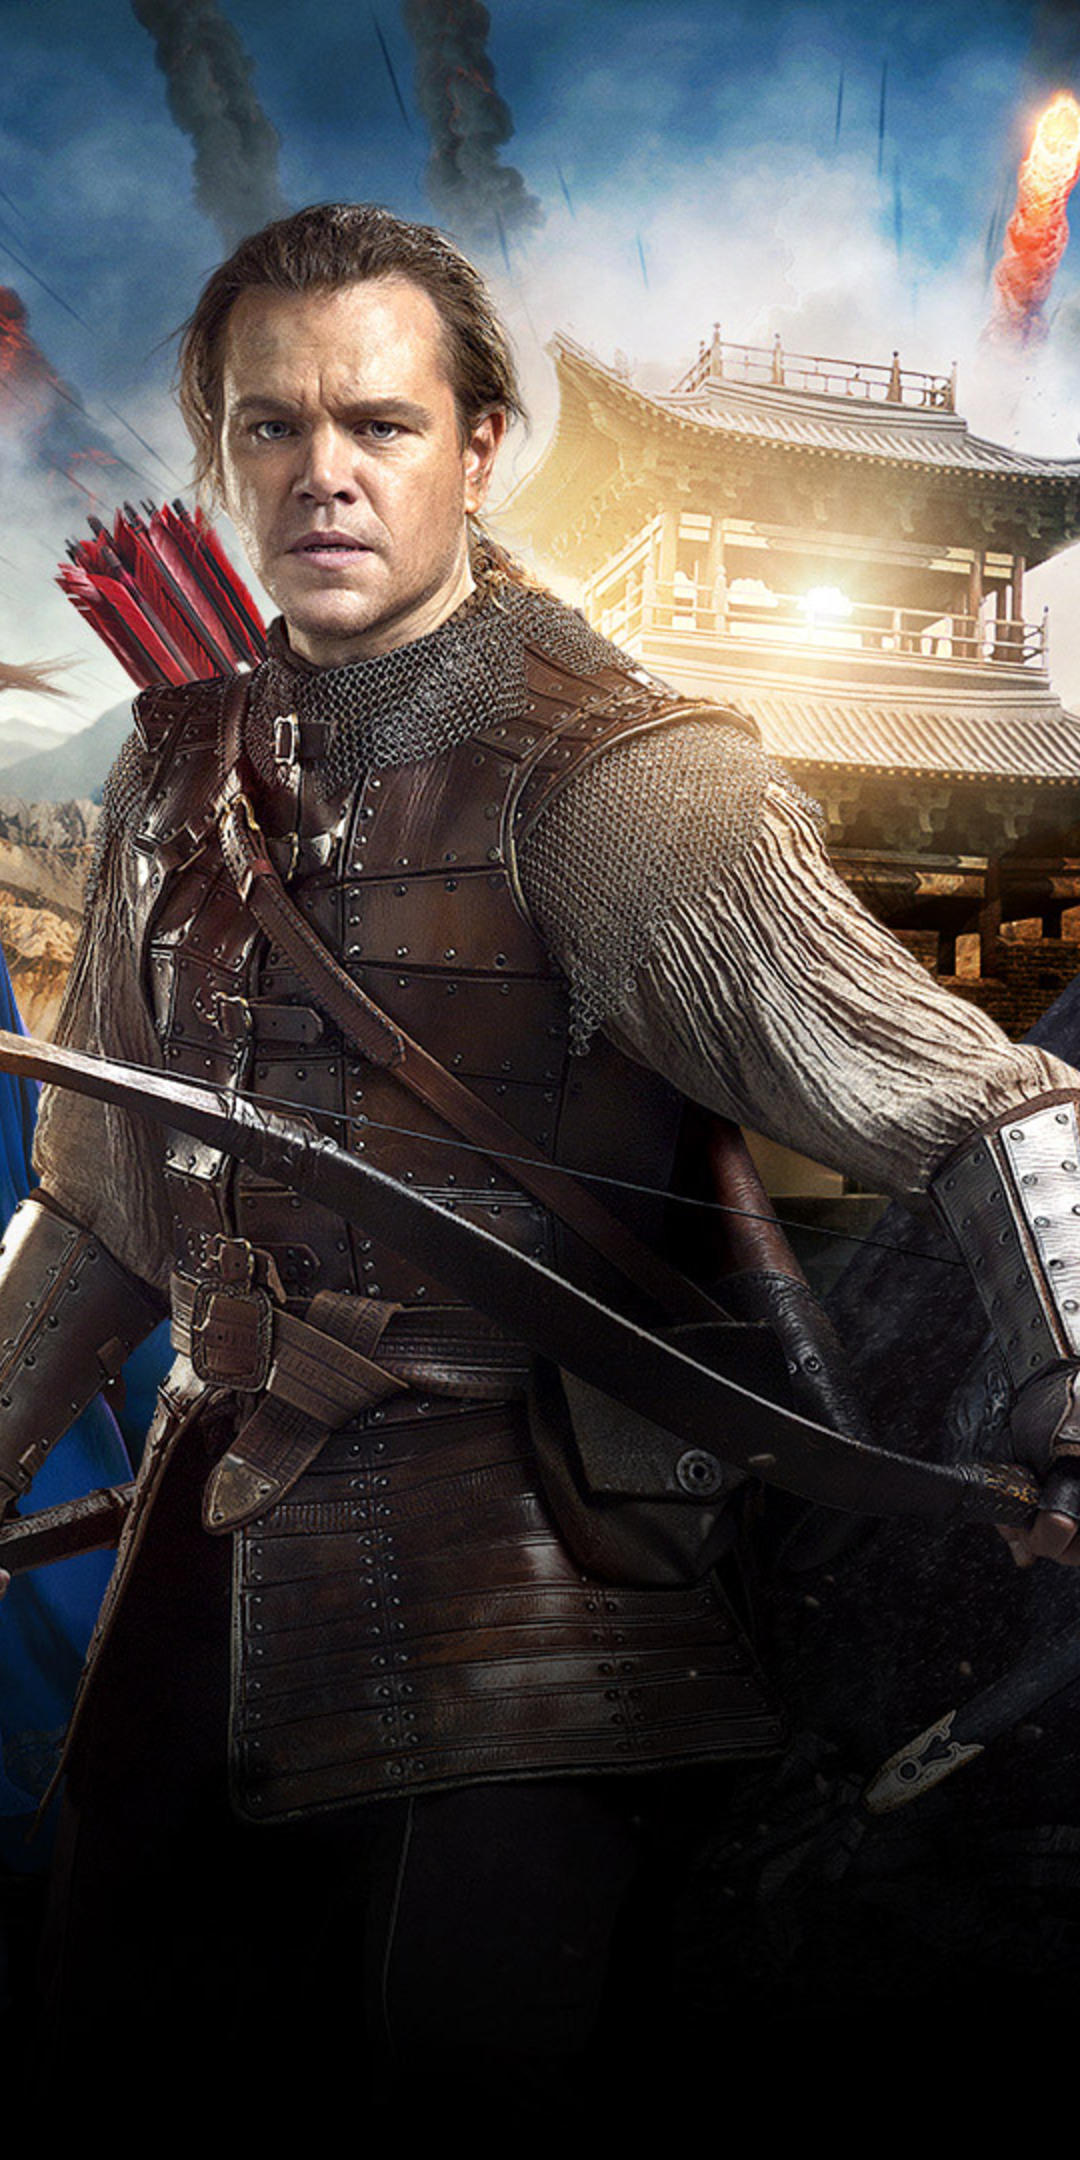 the-great-wall-movie-pic.jpg